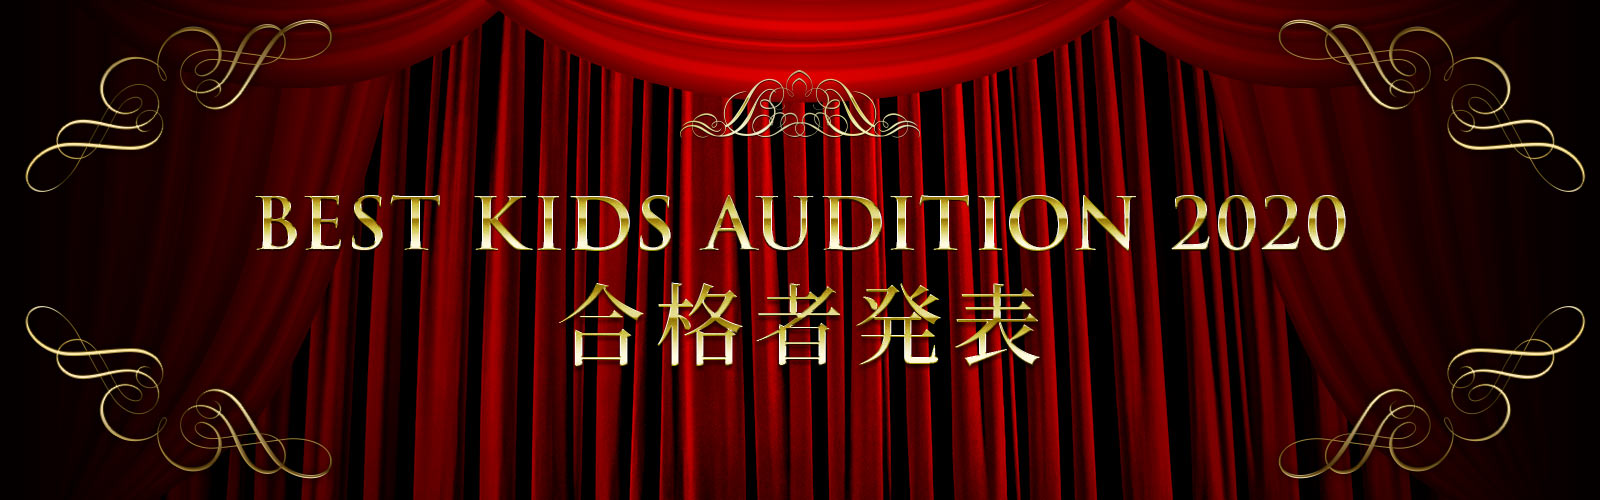 BEST KIDS AUDITION 2020合格者発表